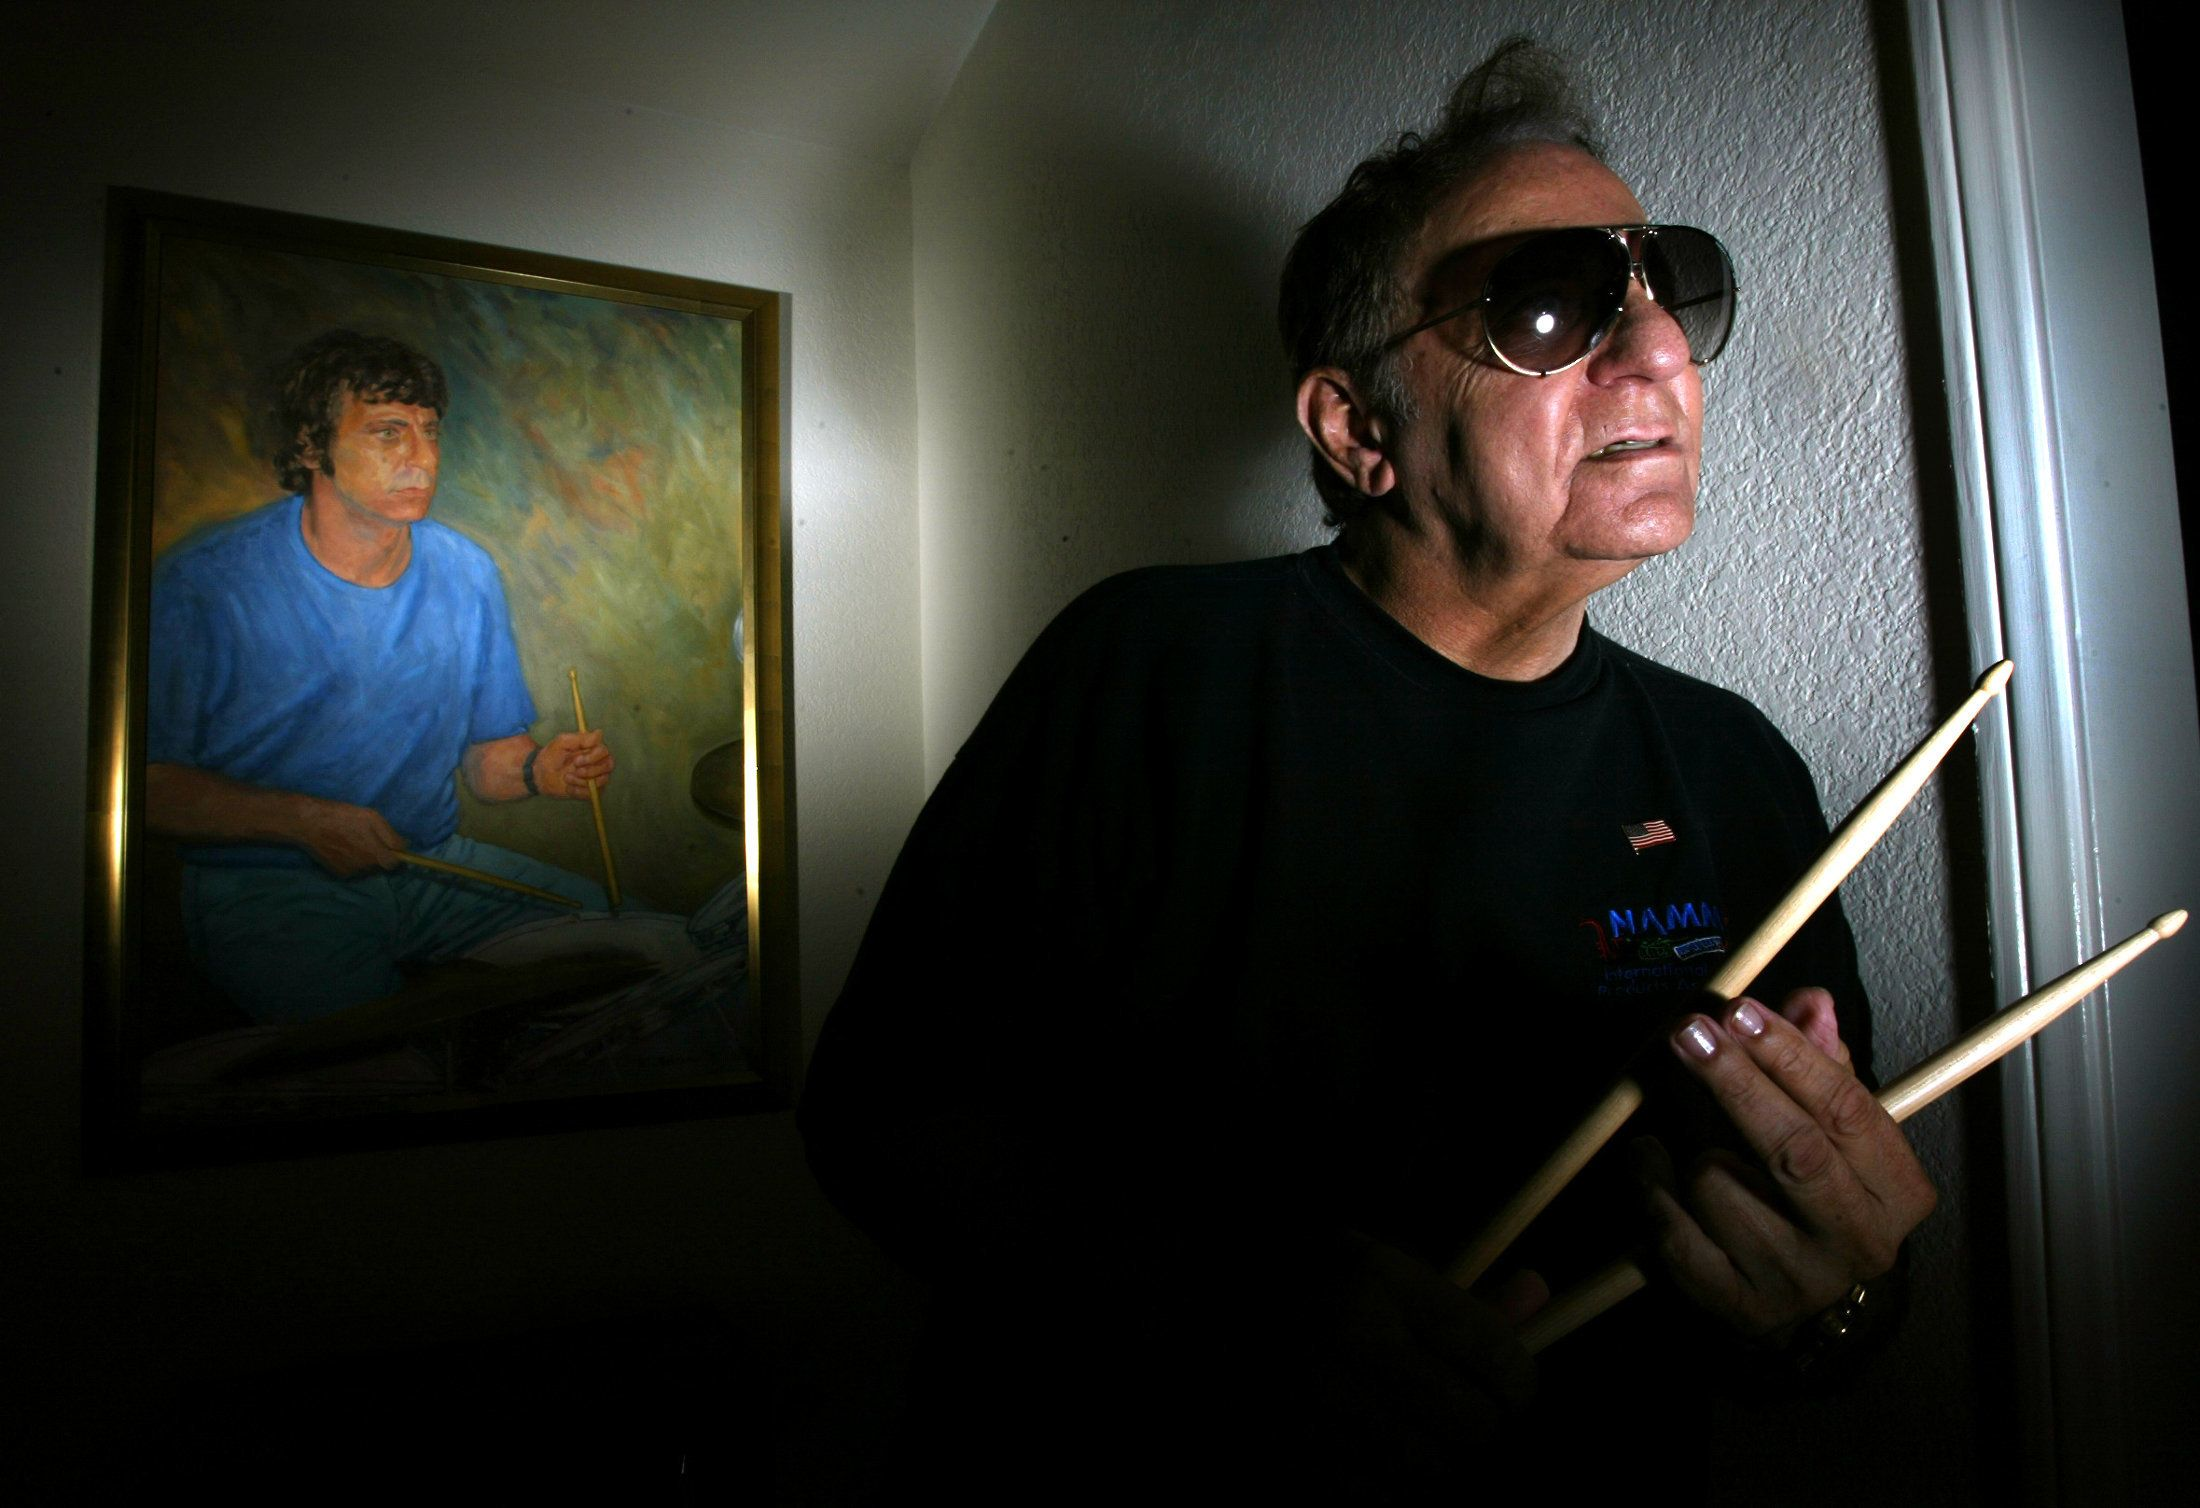 Hal Blaine,74, one of the most famous drummers in the history of pop music, poses in front of an oil painting of himself in younger days at his home in Palm Desert.  (Photo by Gina Ferazzi/Los Angeles Times via Getty Images)